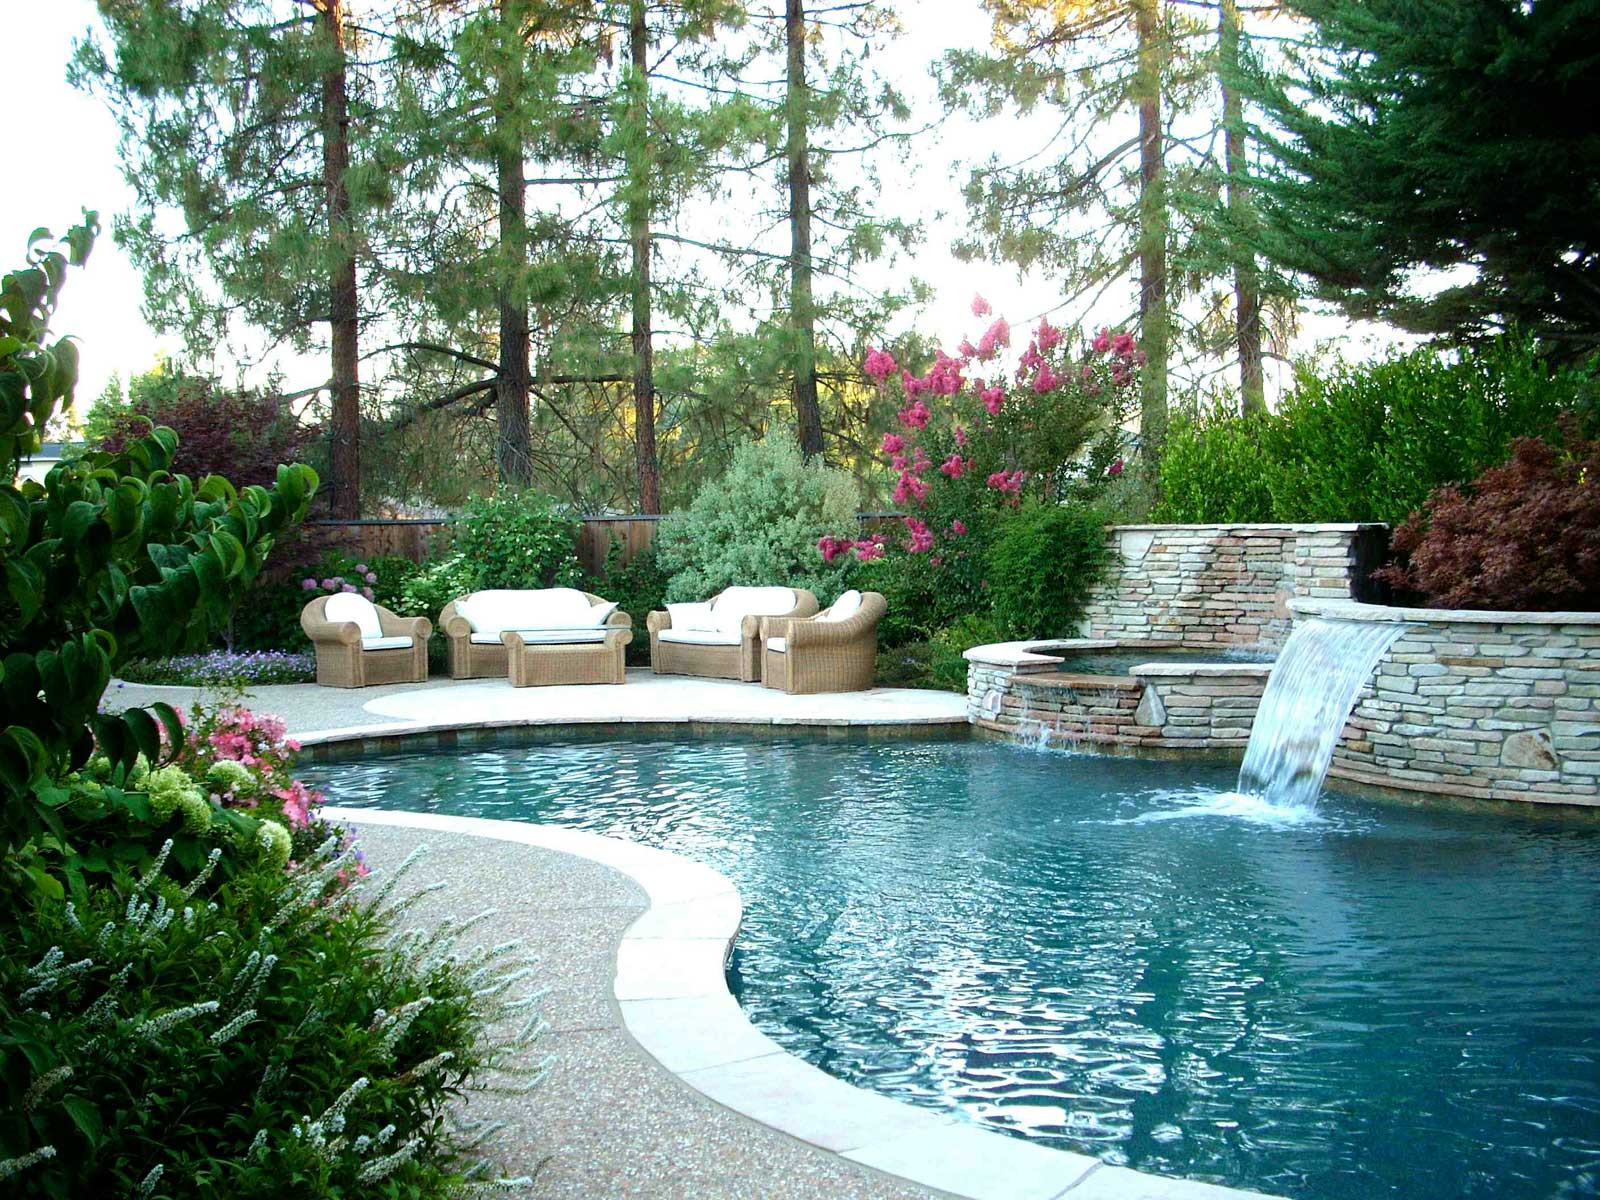 Outdoor Landscape Pool  Backyard Landscape Ideas with Natural Touch for Modern